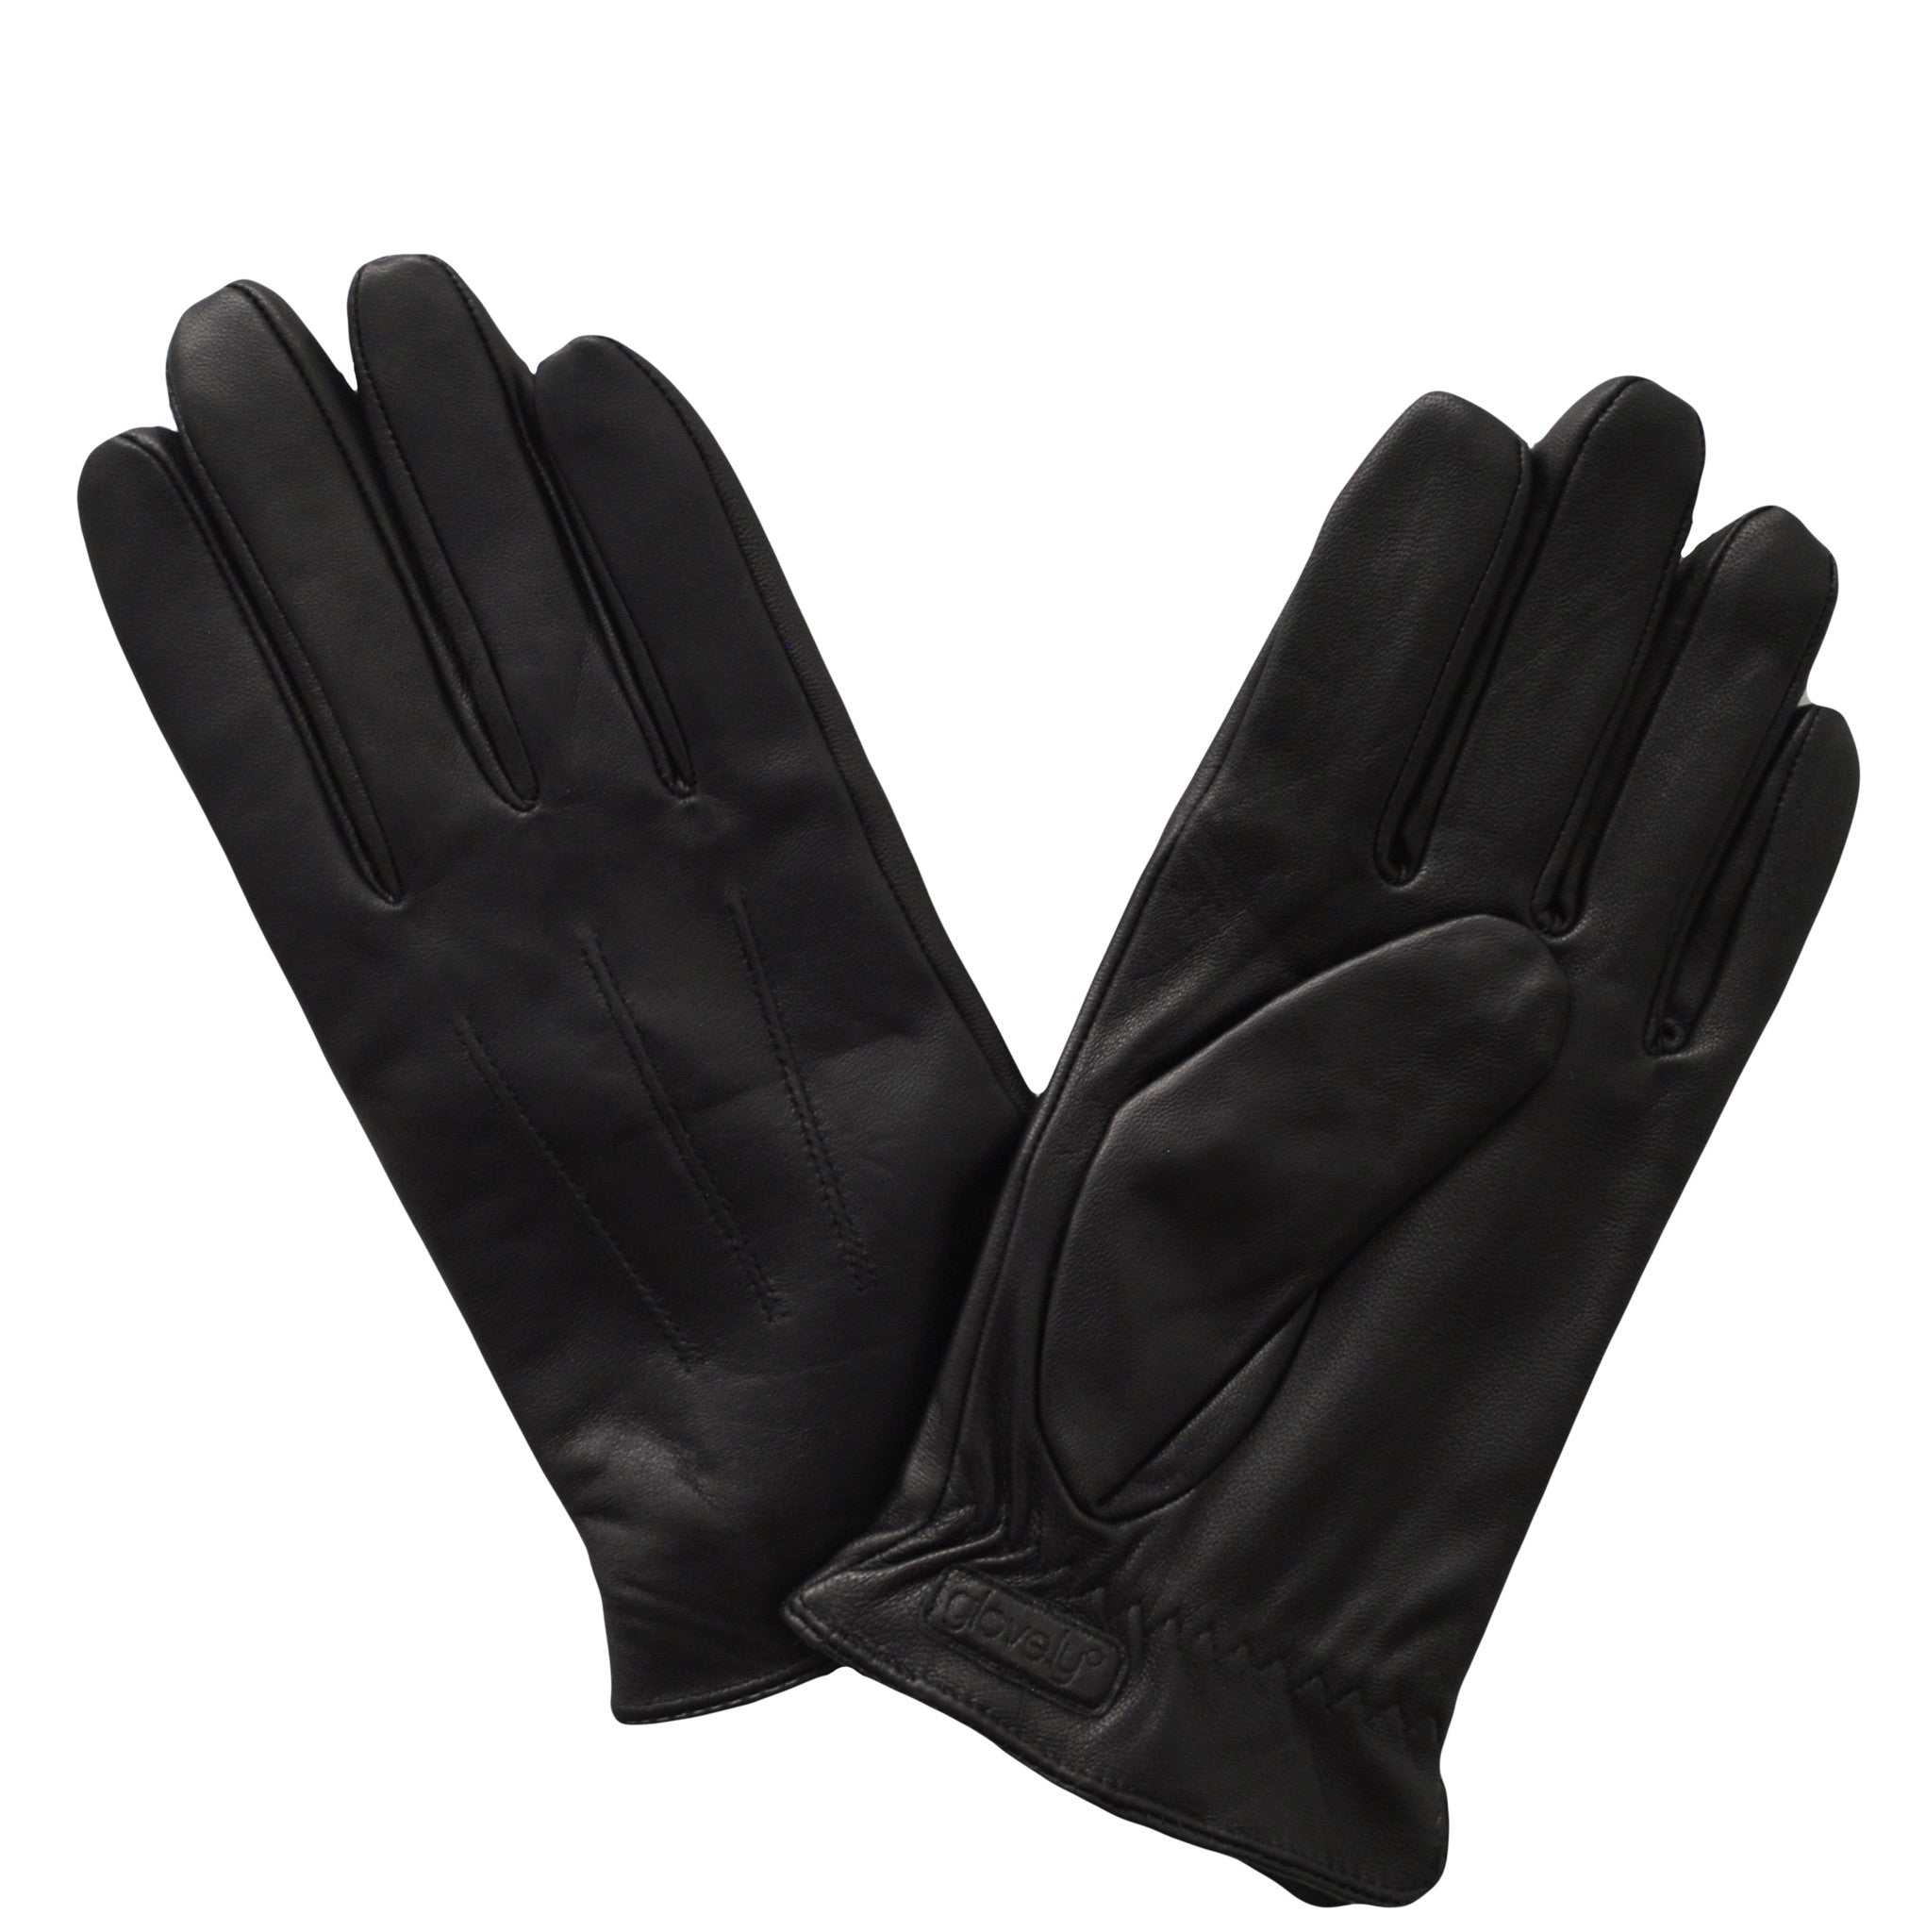 Womens leather touchscreen gloves -  Women S Classic Leather Touch Screen Glove Black